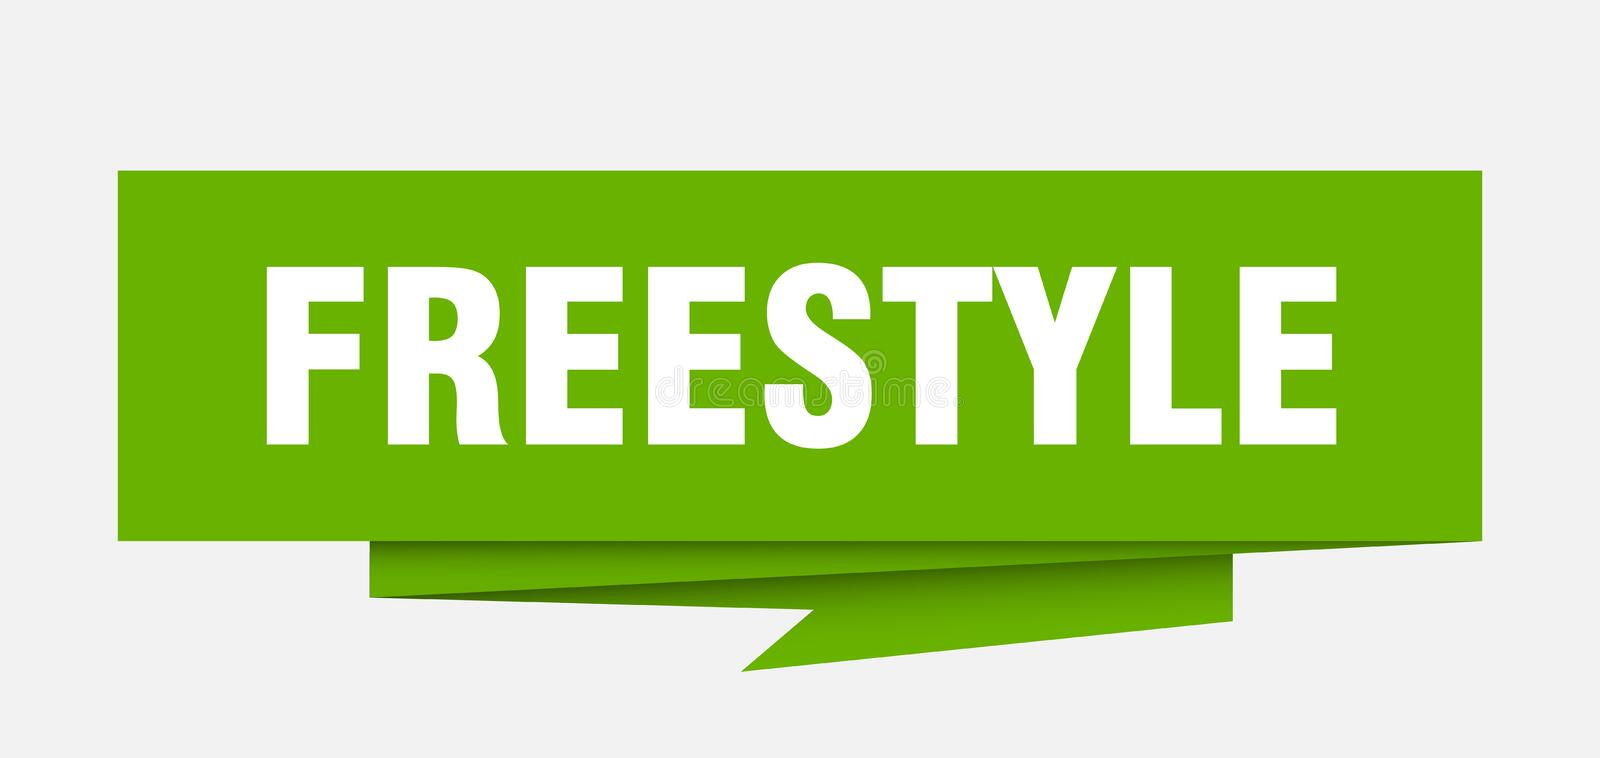 freestyle stock de ilustración